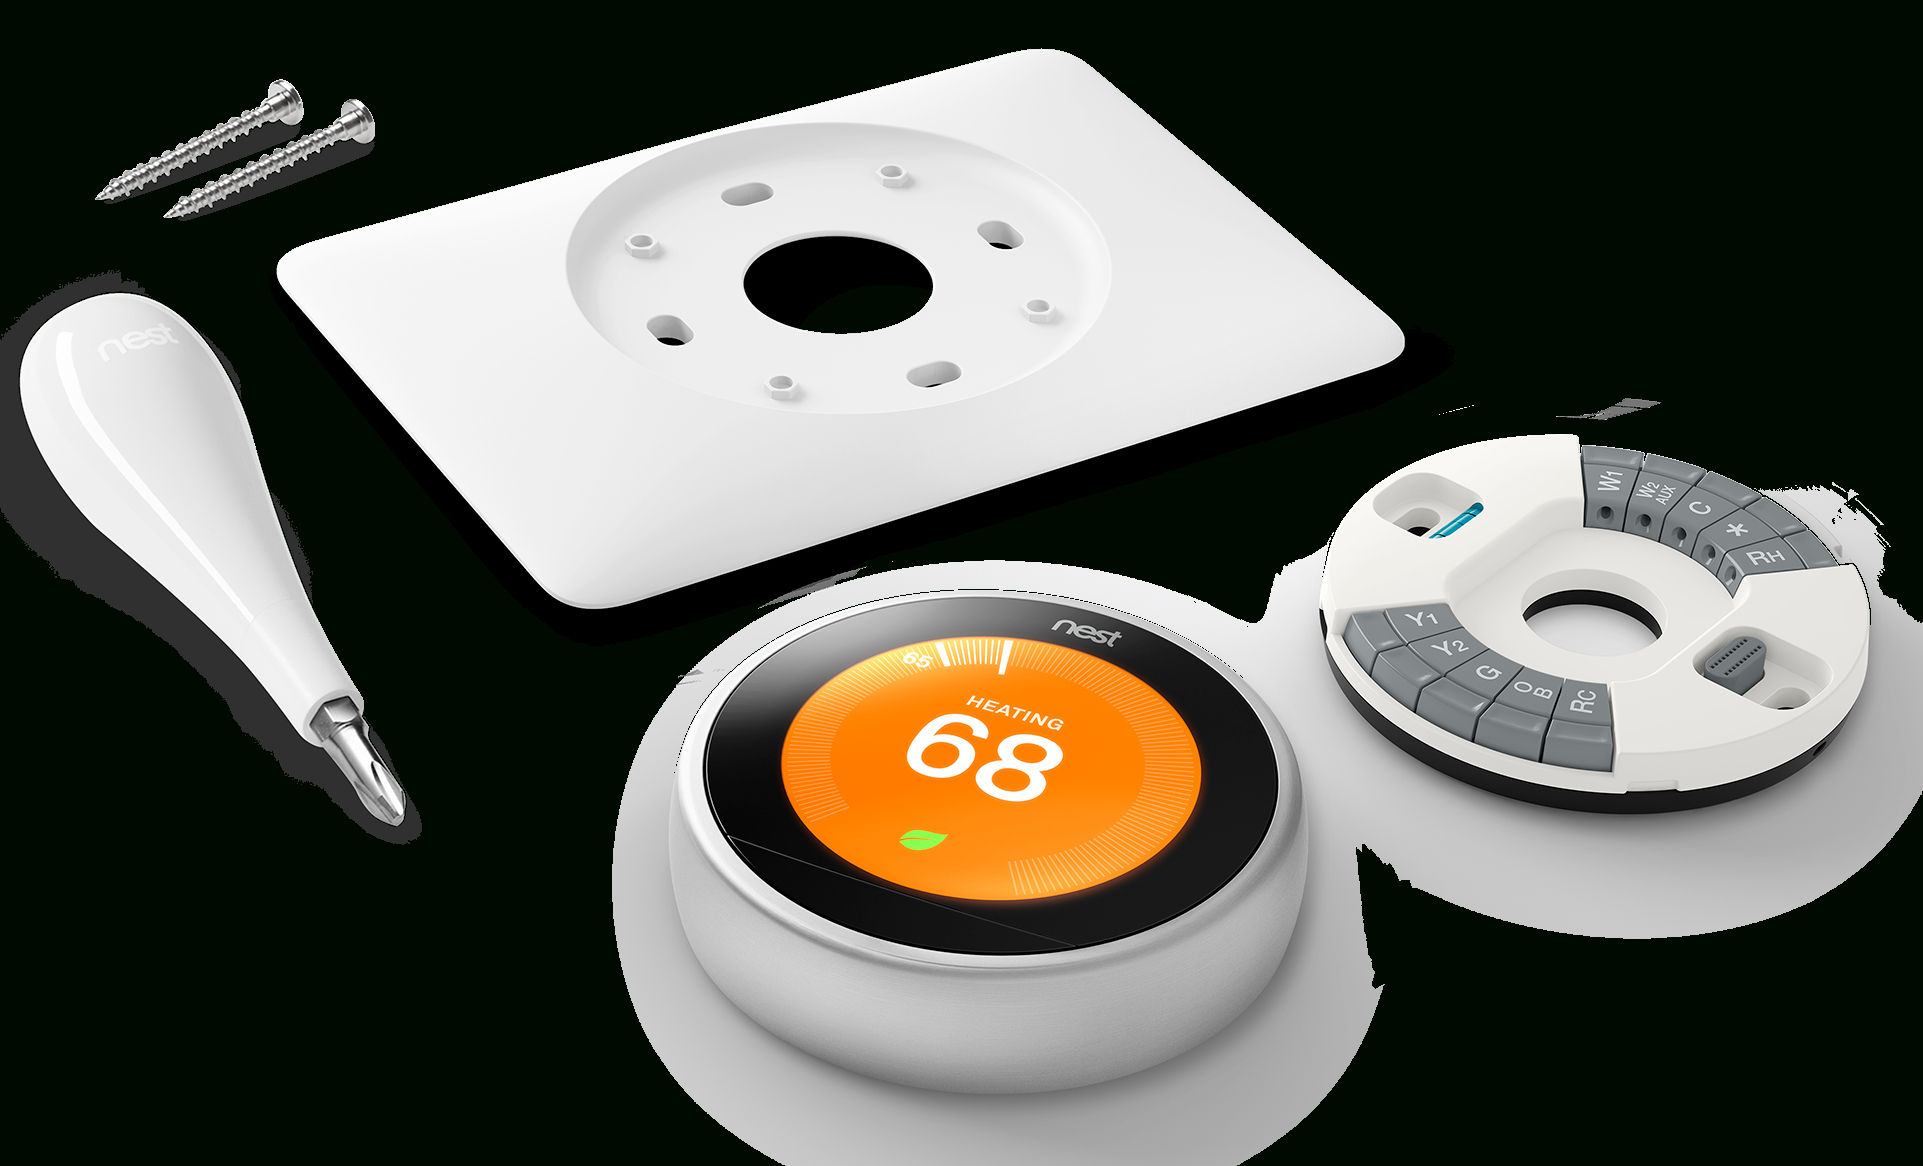 How To Install Your Nest Thermostat - 1St Gen Nest Wiring Diagram